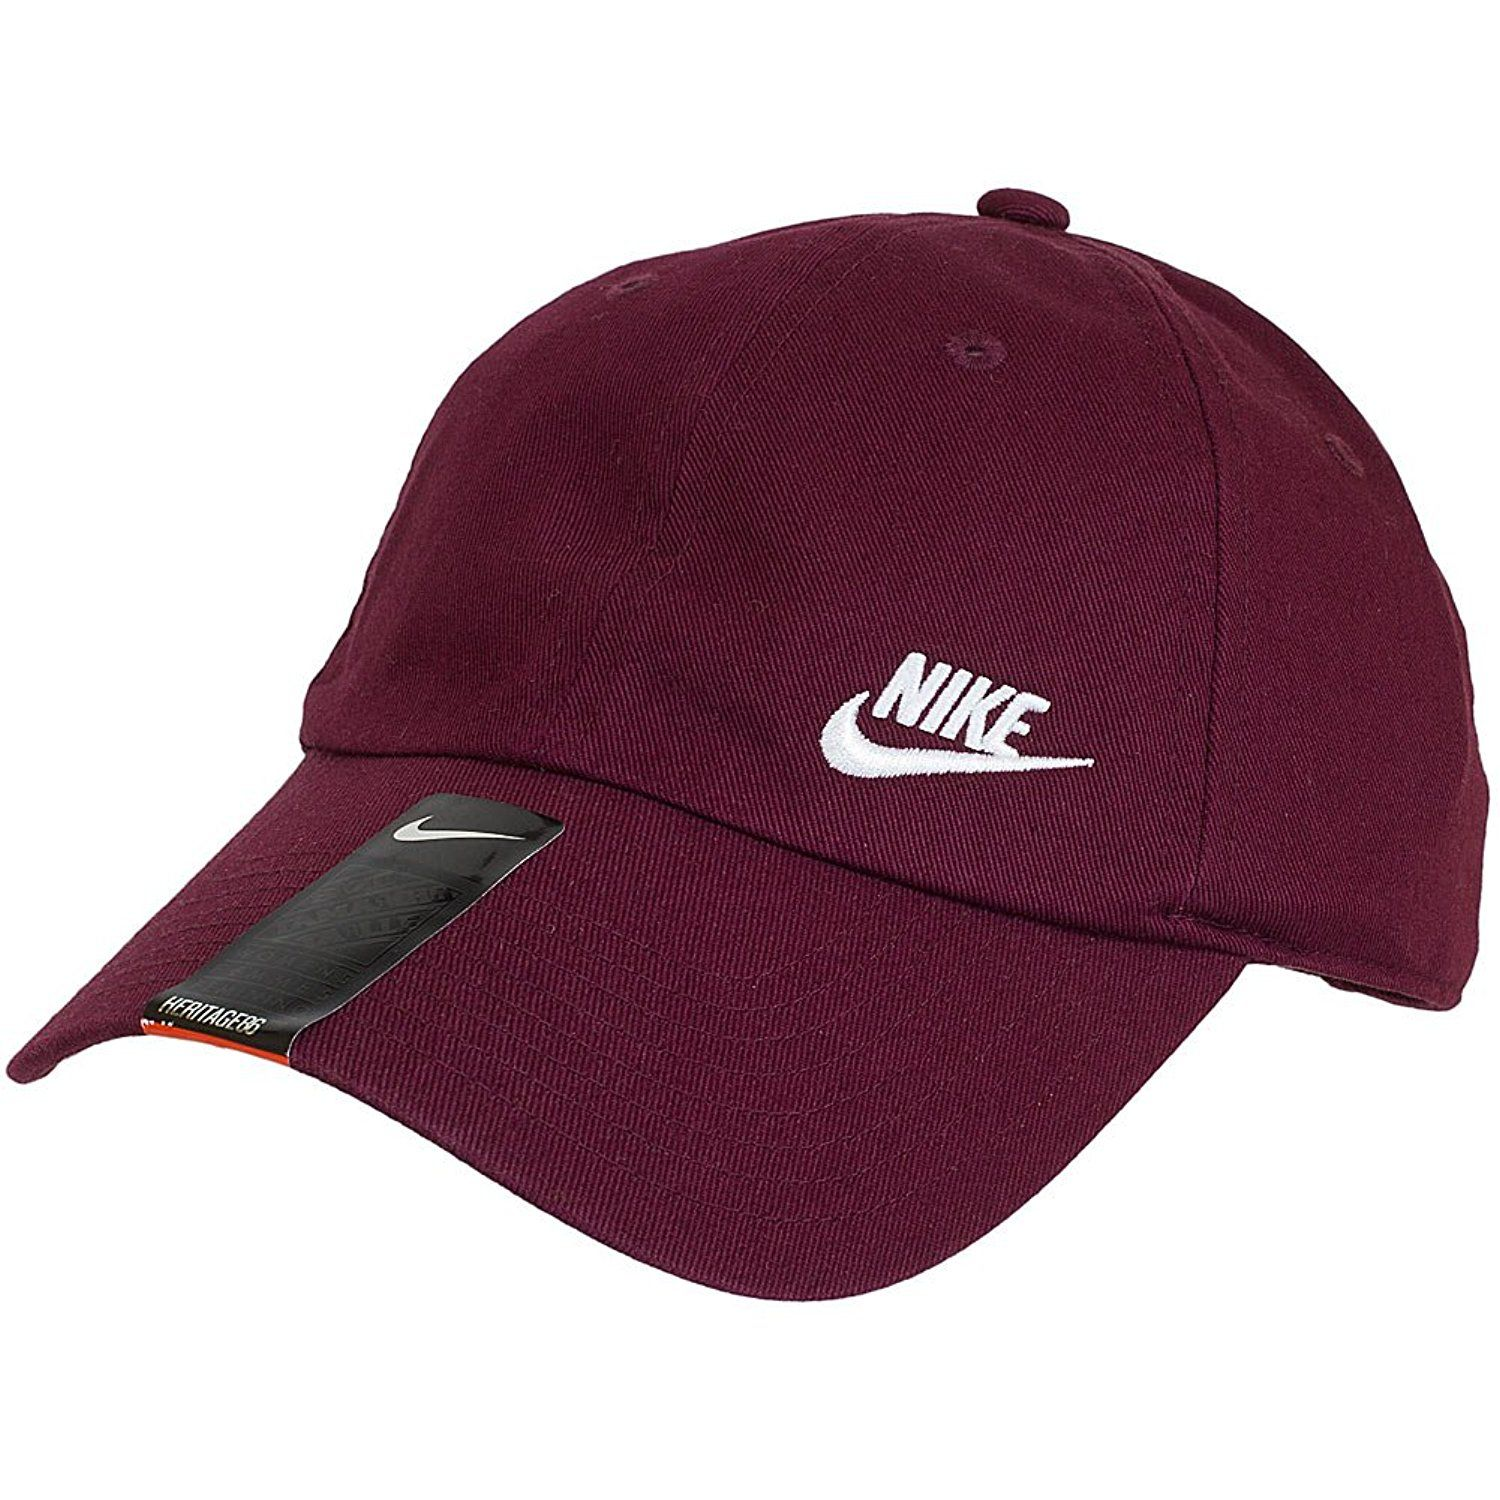 607df4af0a8d9 Amazon.com  Nike Women s Twill H86 Women s Maroon Baseball Cap Burgundy   Sports   Outdoors